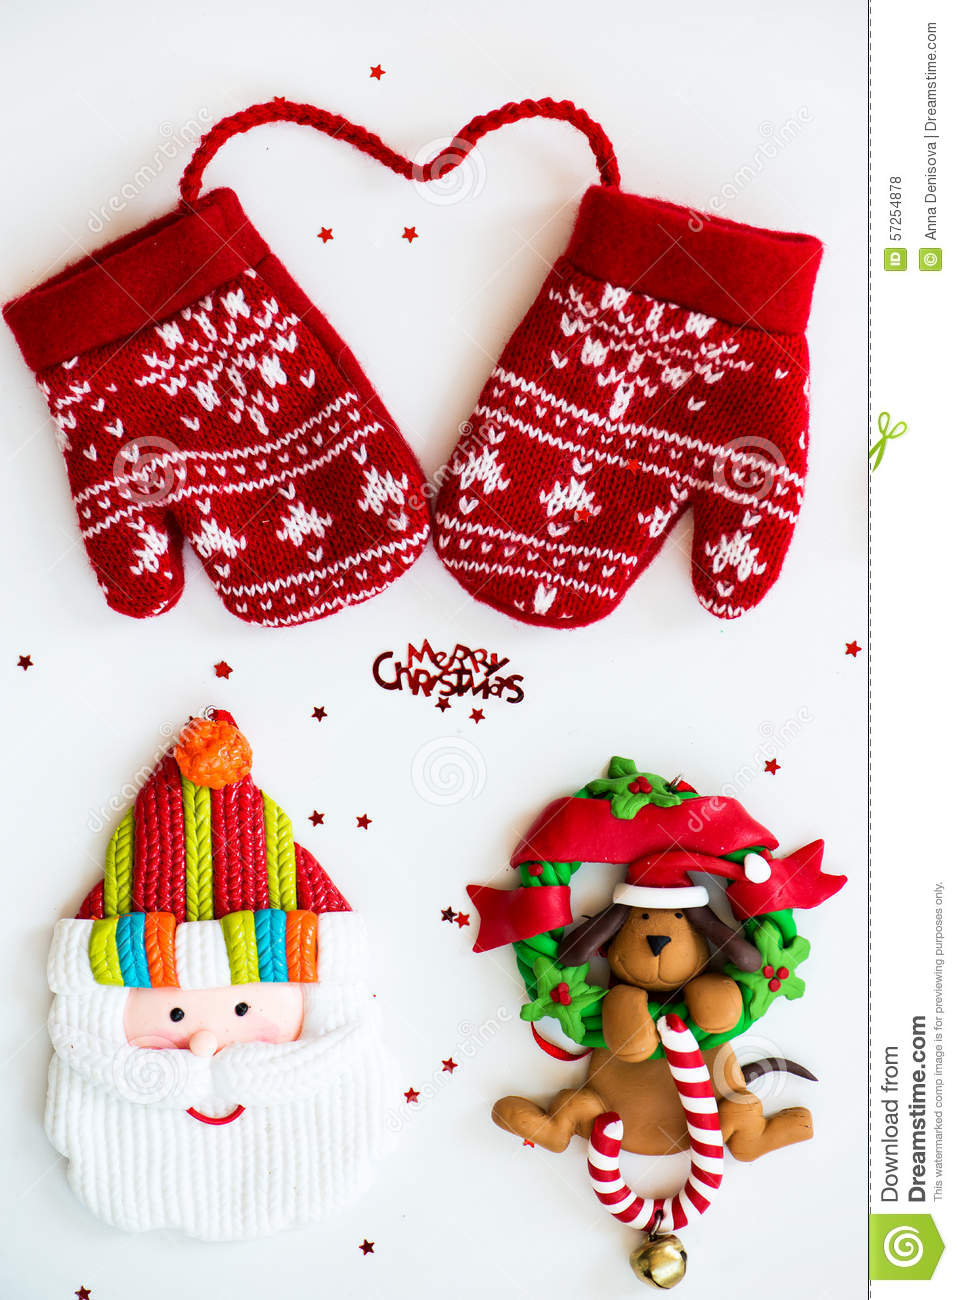 Merry Christmas Symbols Letters Red Knitted Mittens Santa D